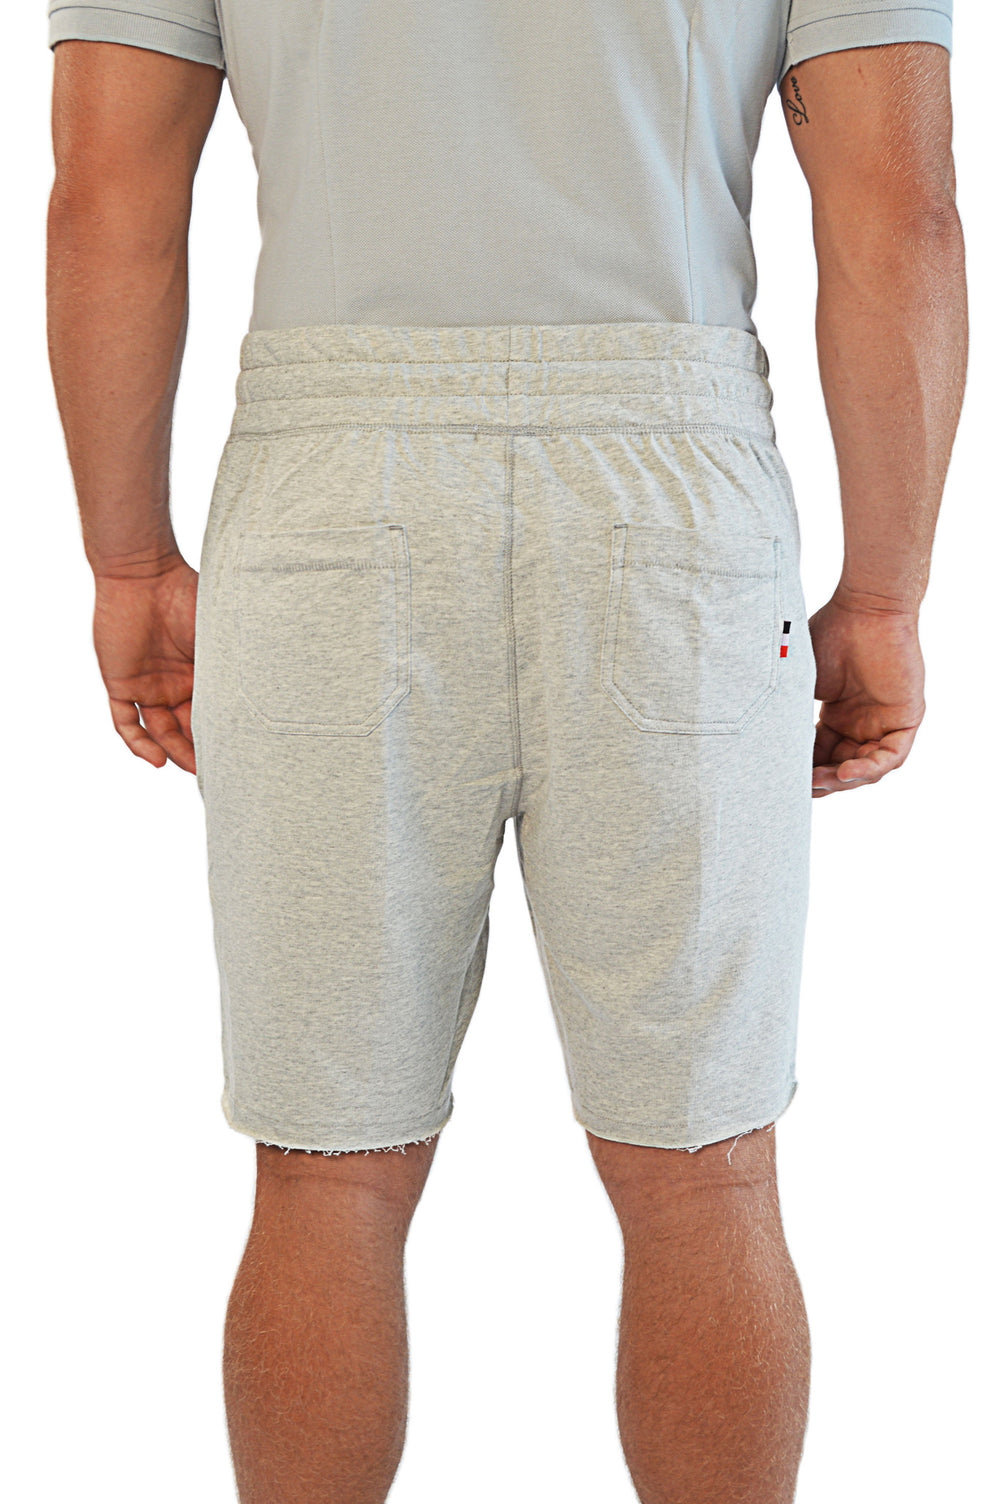 Back view french terry gym shorts